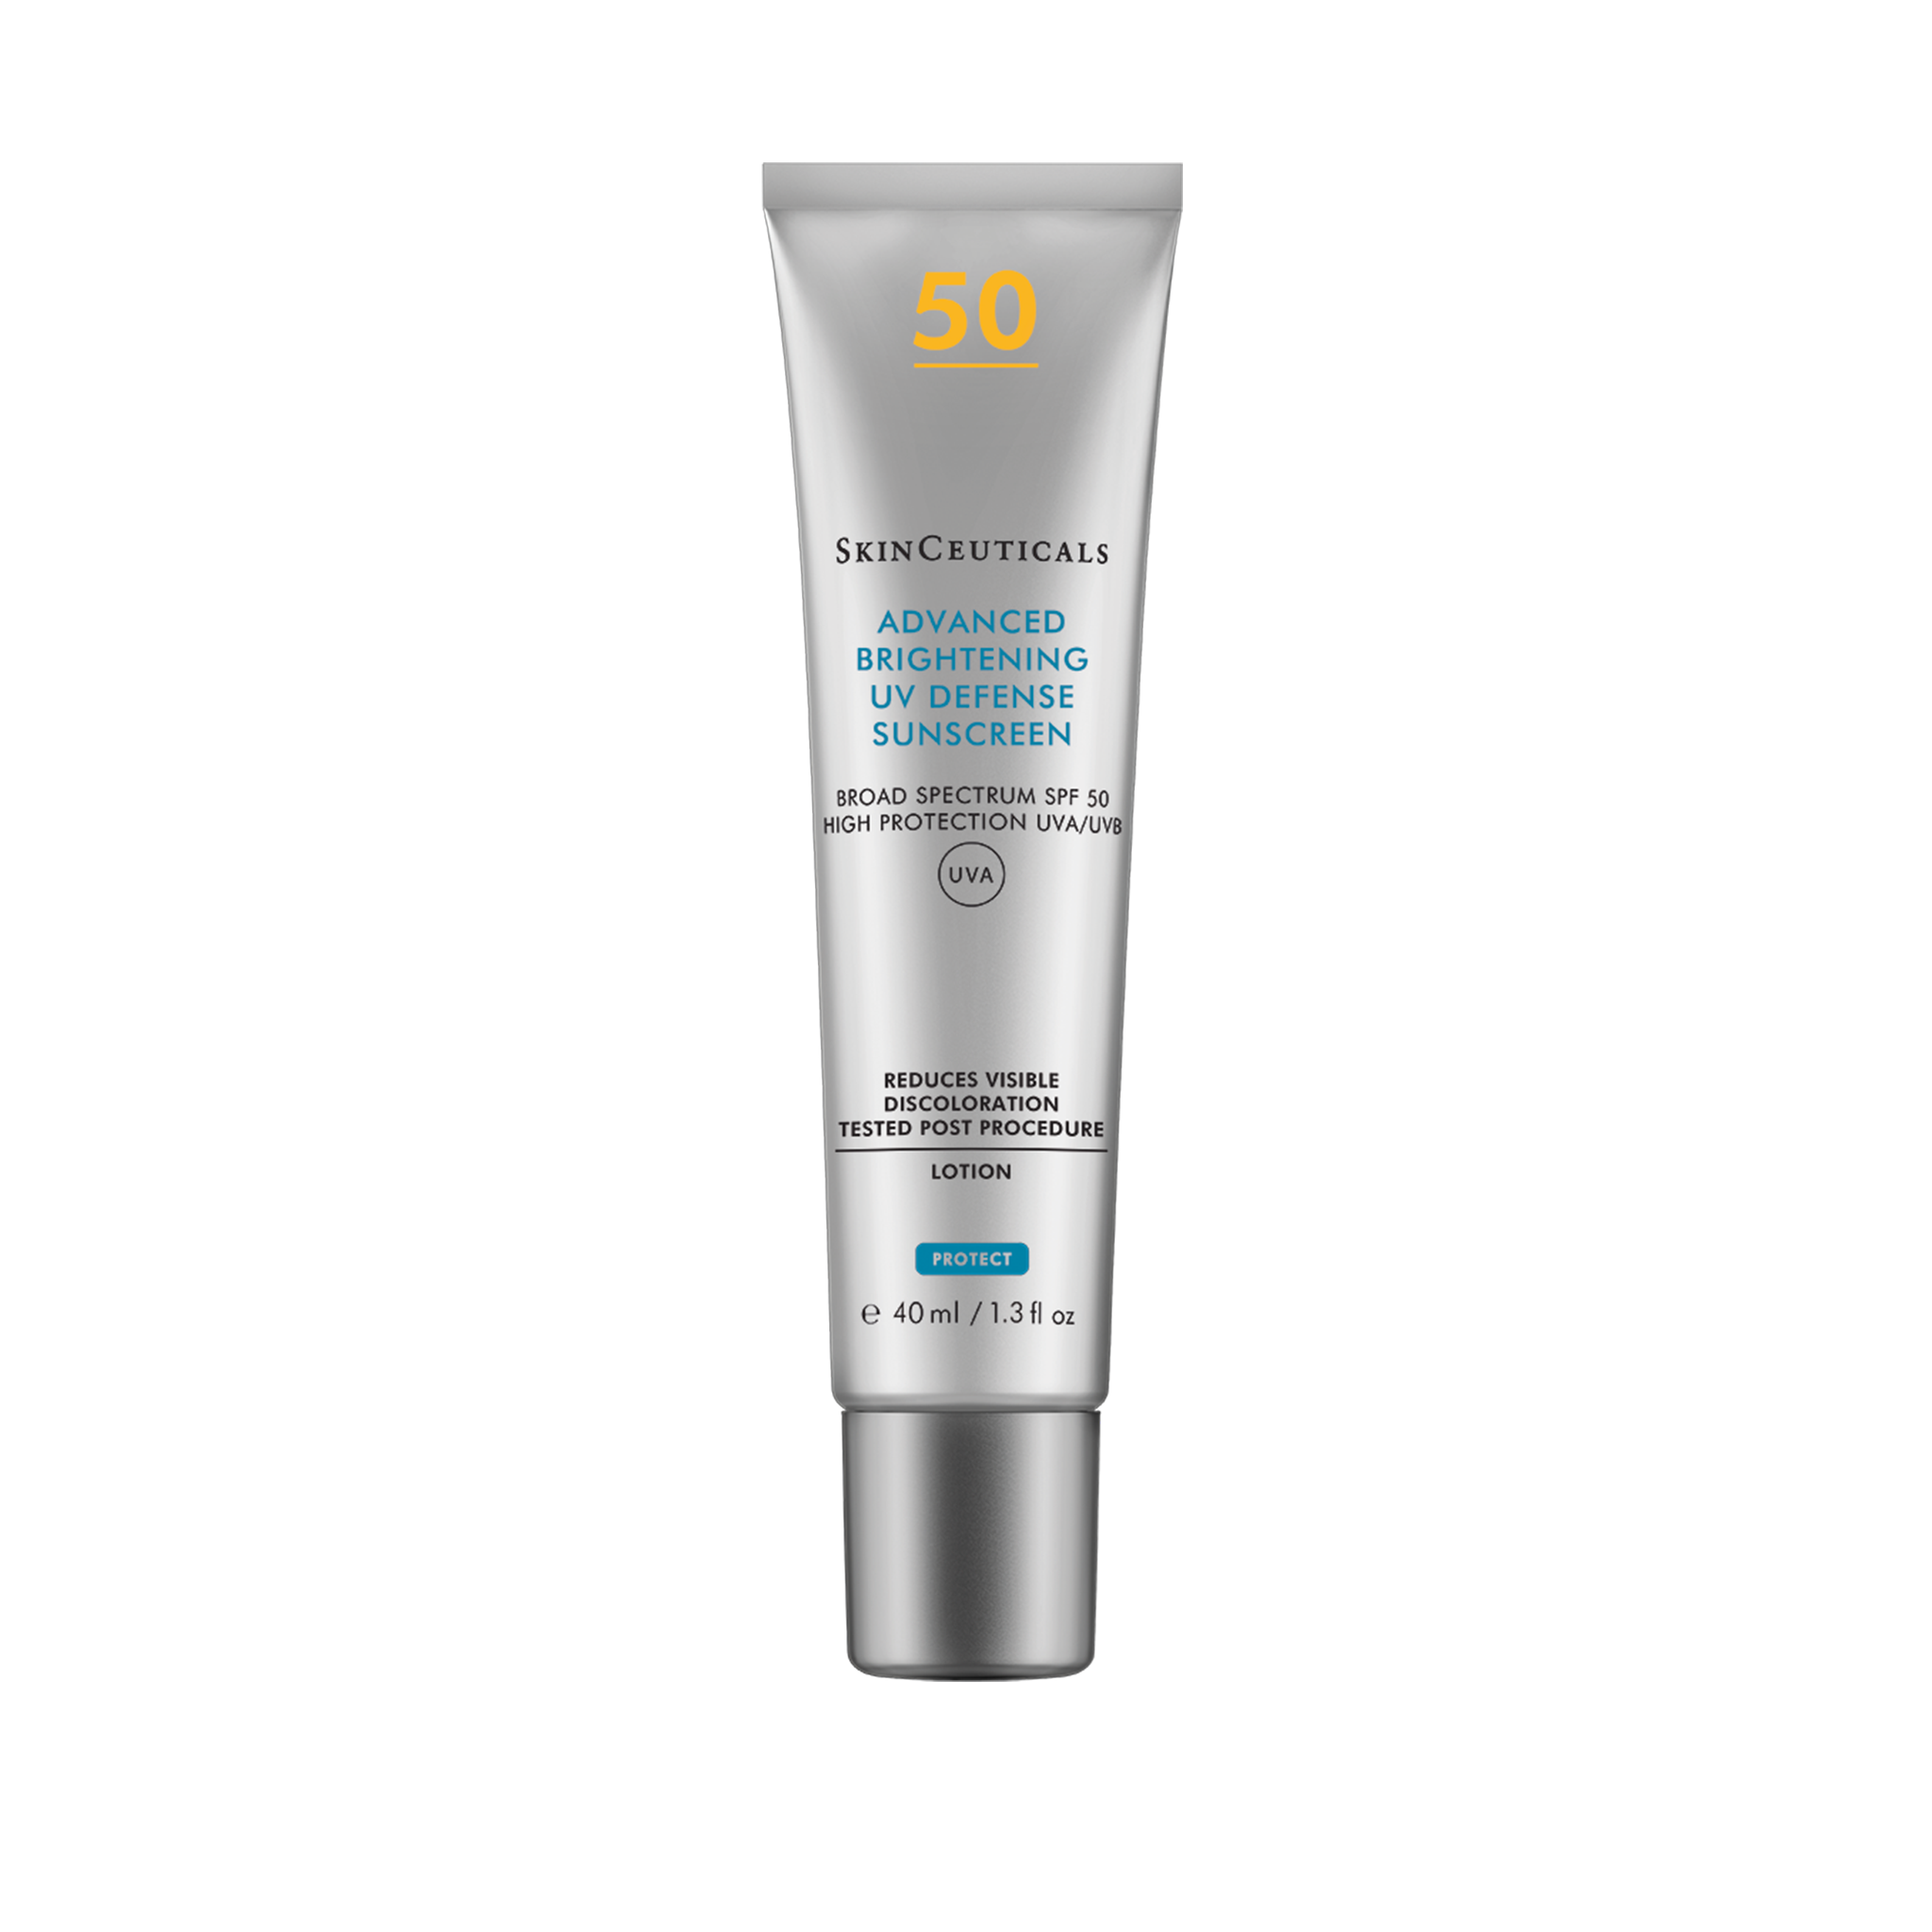 SkinCeuticals Advanced Brightening UV Defense Sunscreen LSF 50